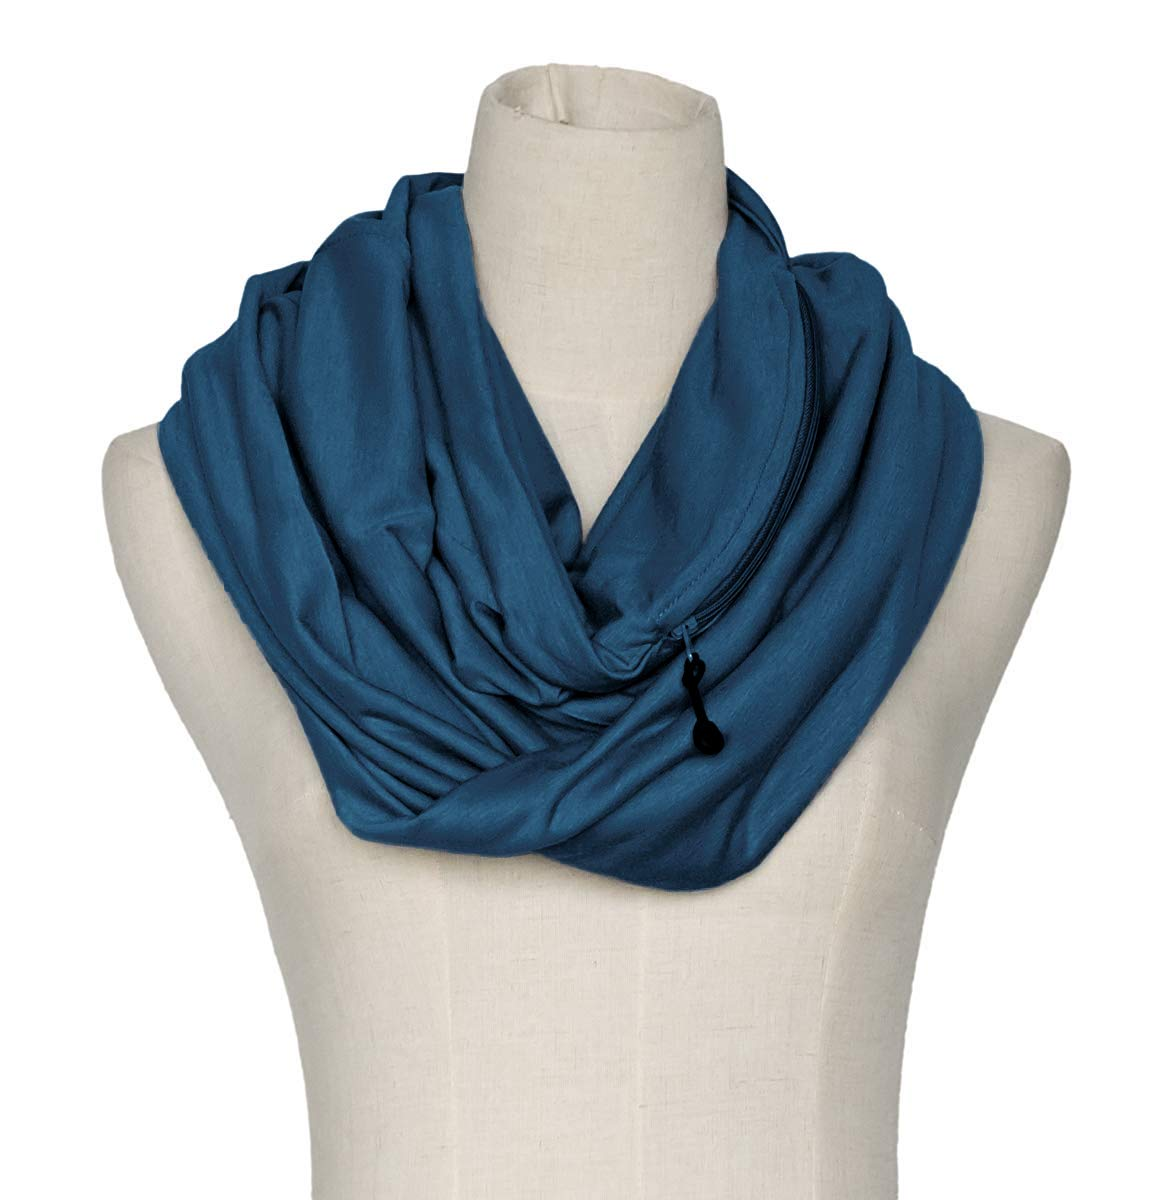 Women' s Solid Infinity Travel Scarf With Secret Zipper Pockets (Navy Blue) BGWBKD72NB